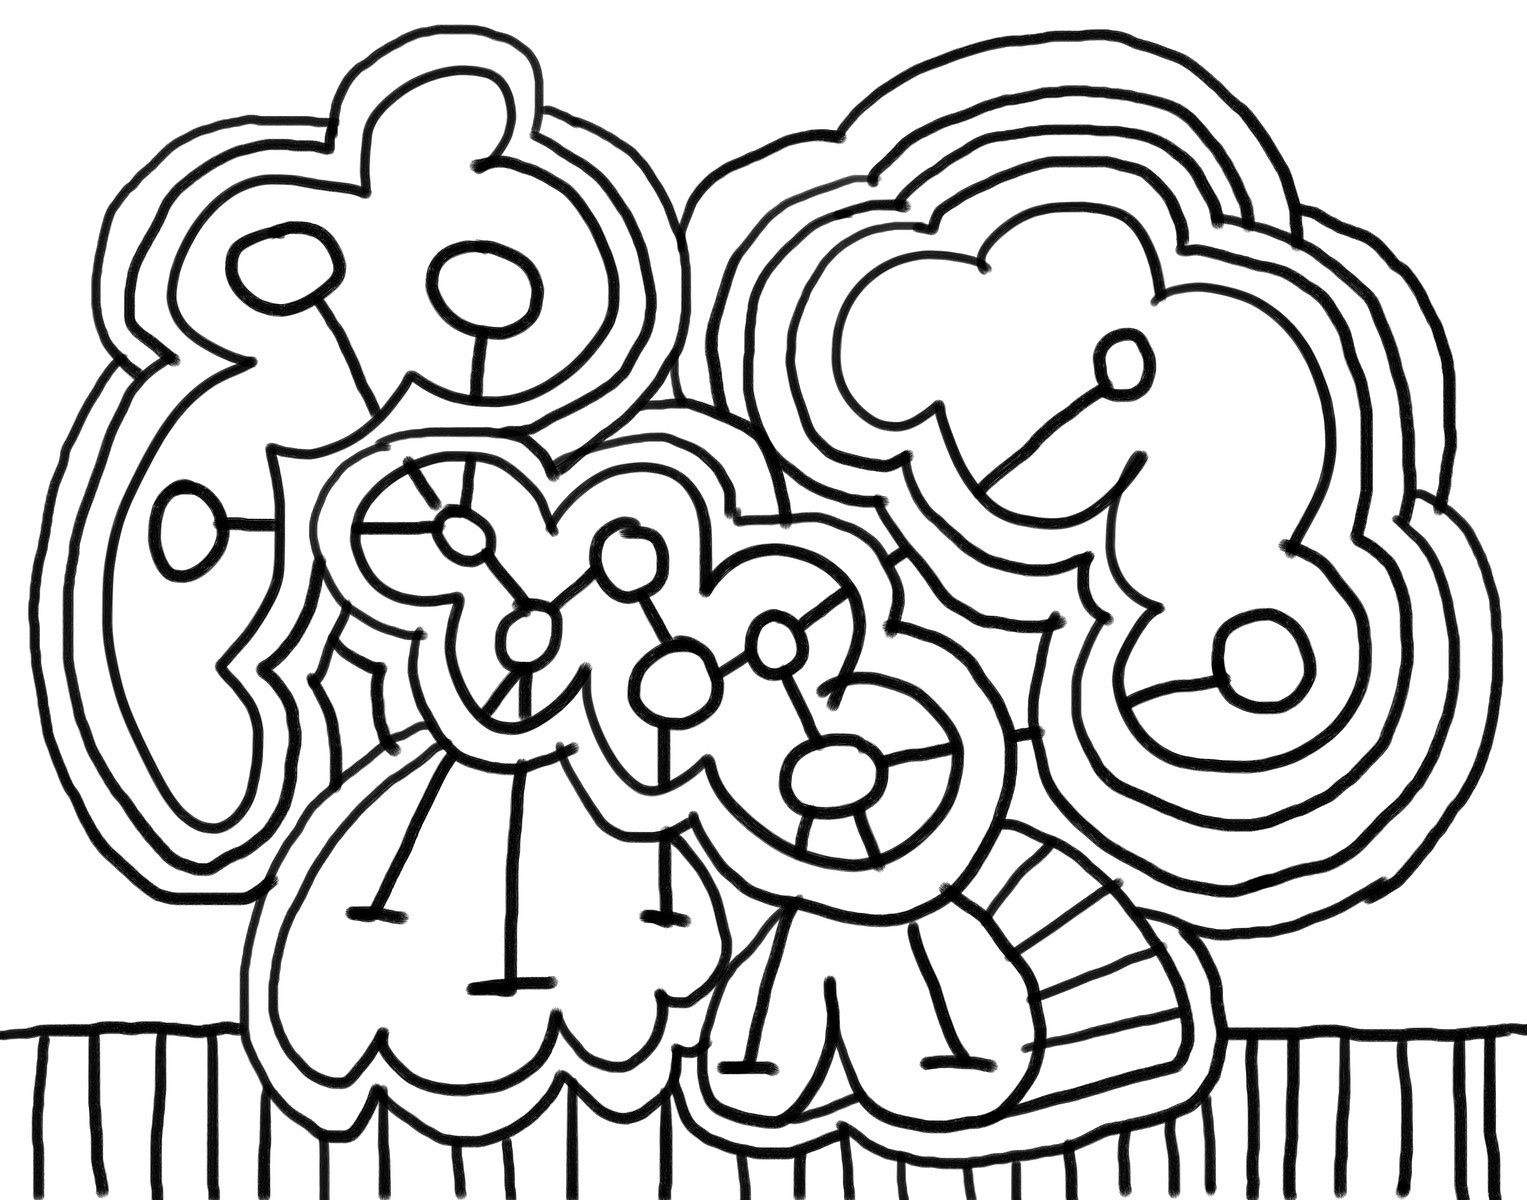 op art coloring pages - photo#12